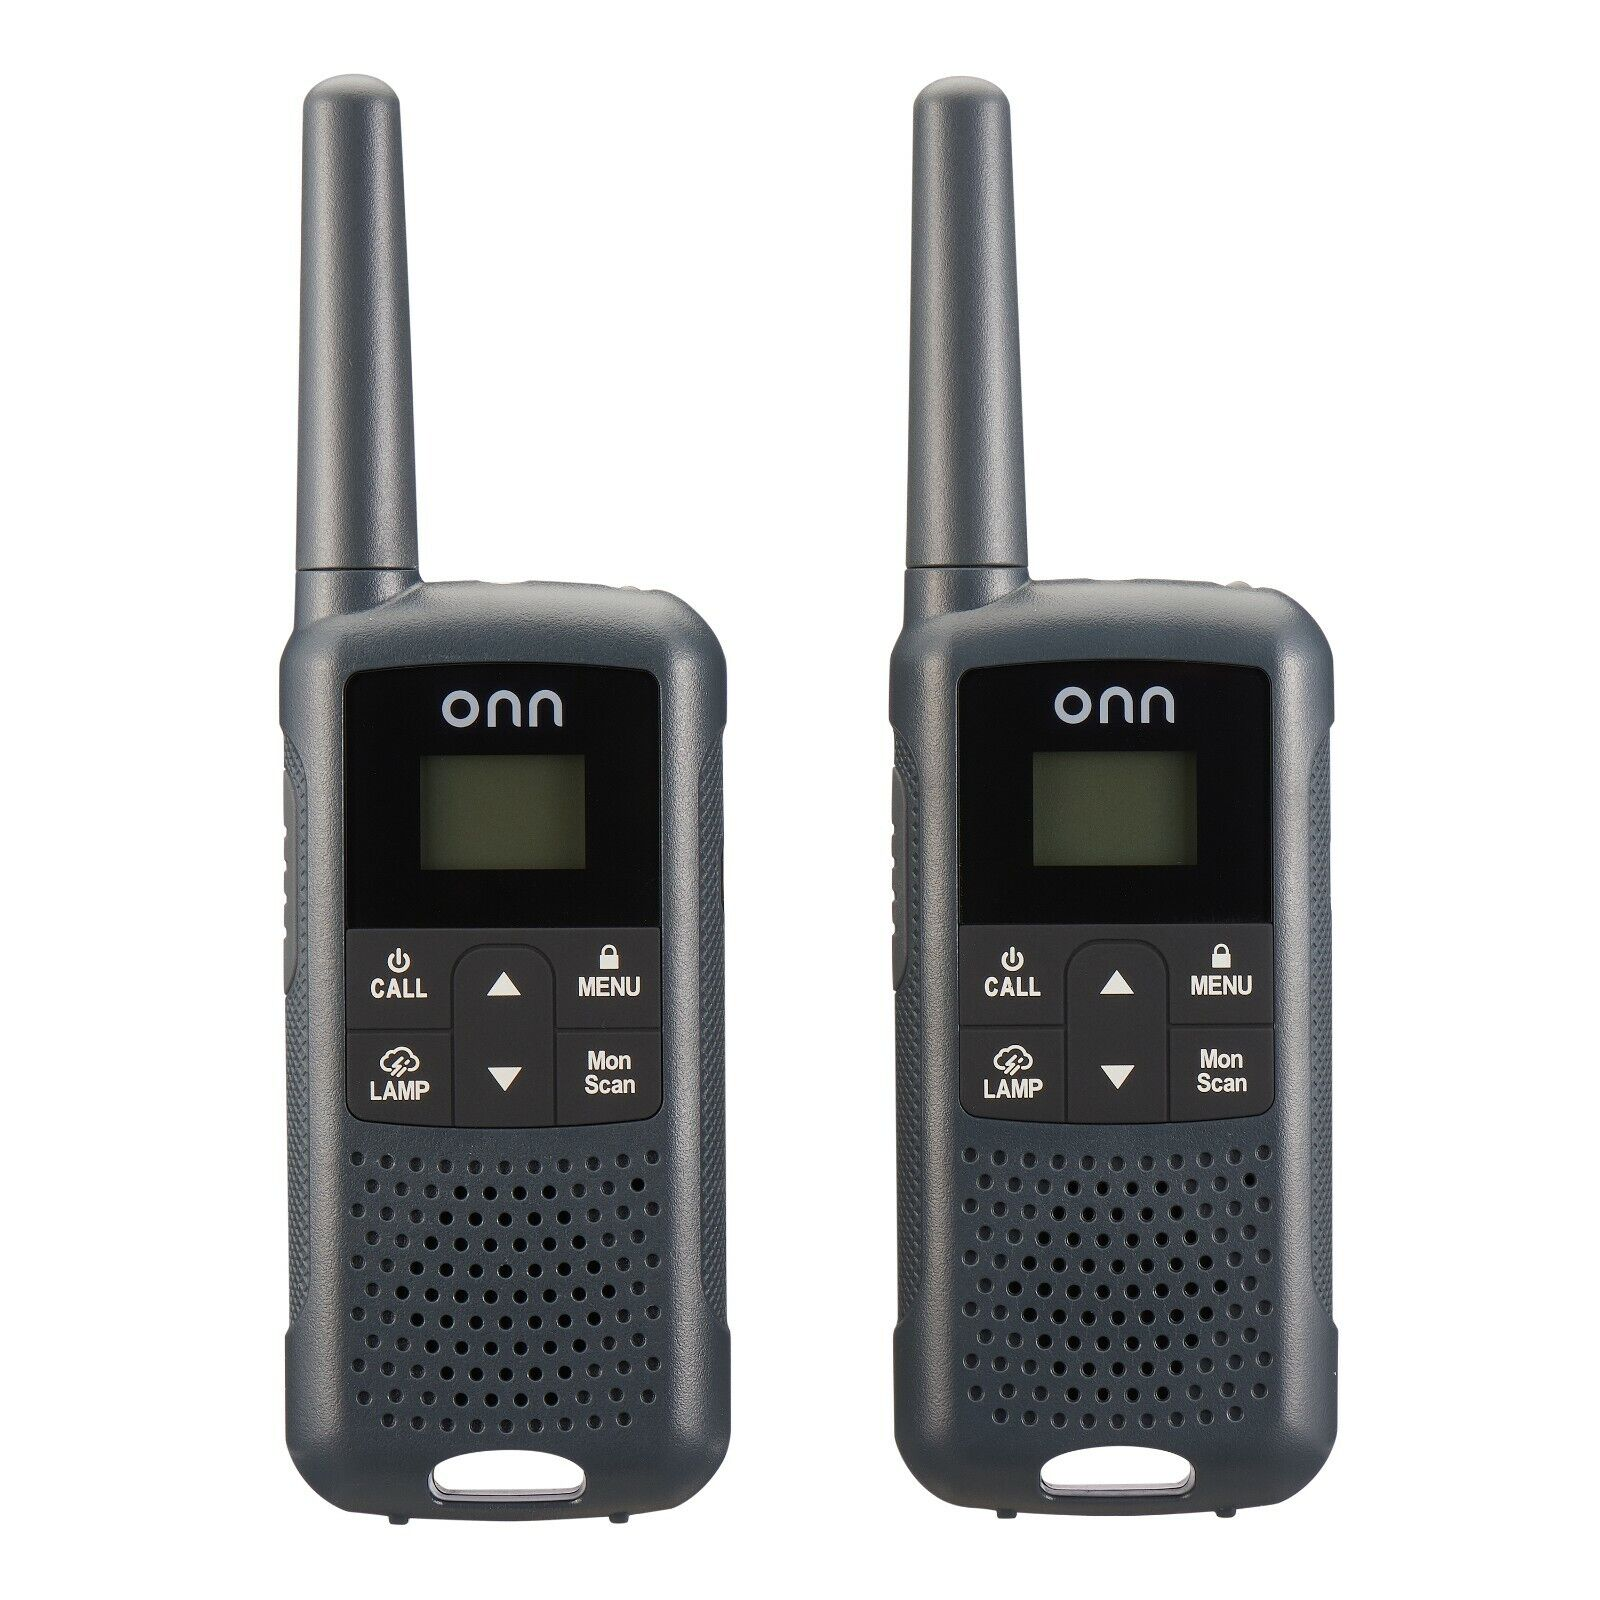 2pcs radios Milecan MC-1 Walkie Talkies 2pcs in One Box with mic earpiece Costume walkie Talkie Rechargeable Battery Headphone Wall Charger Long Range 16 Channels Two Way Radio